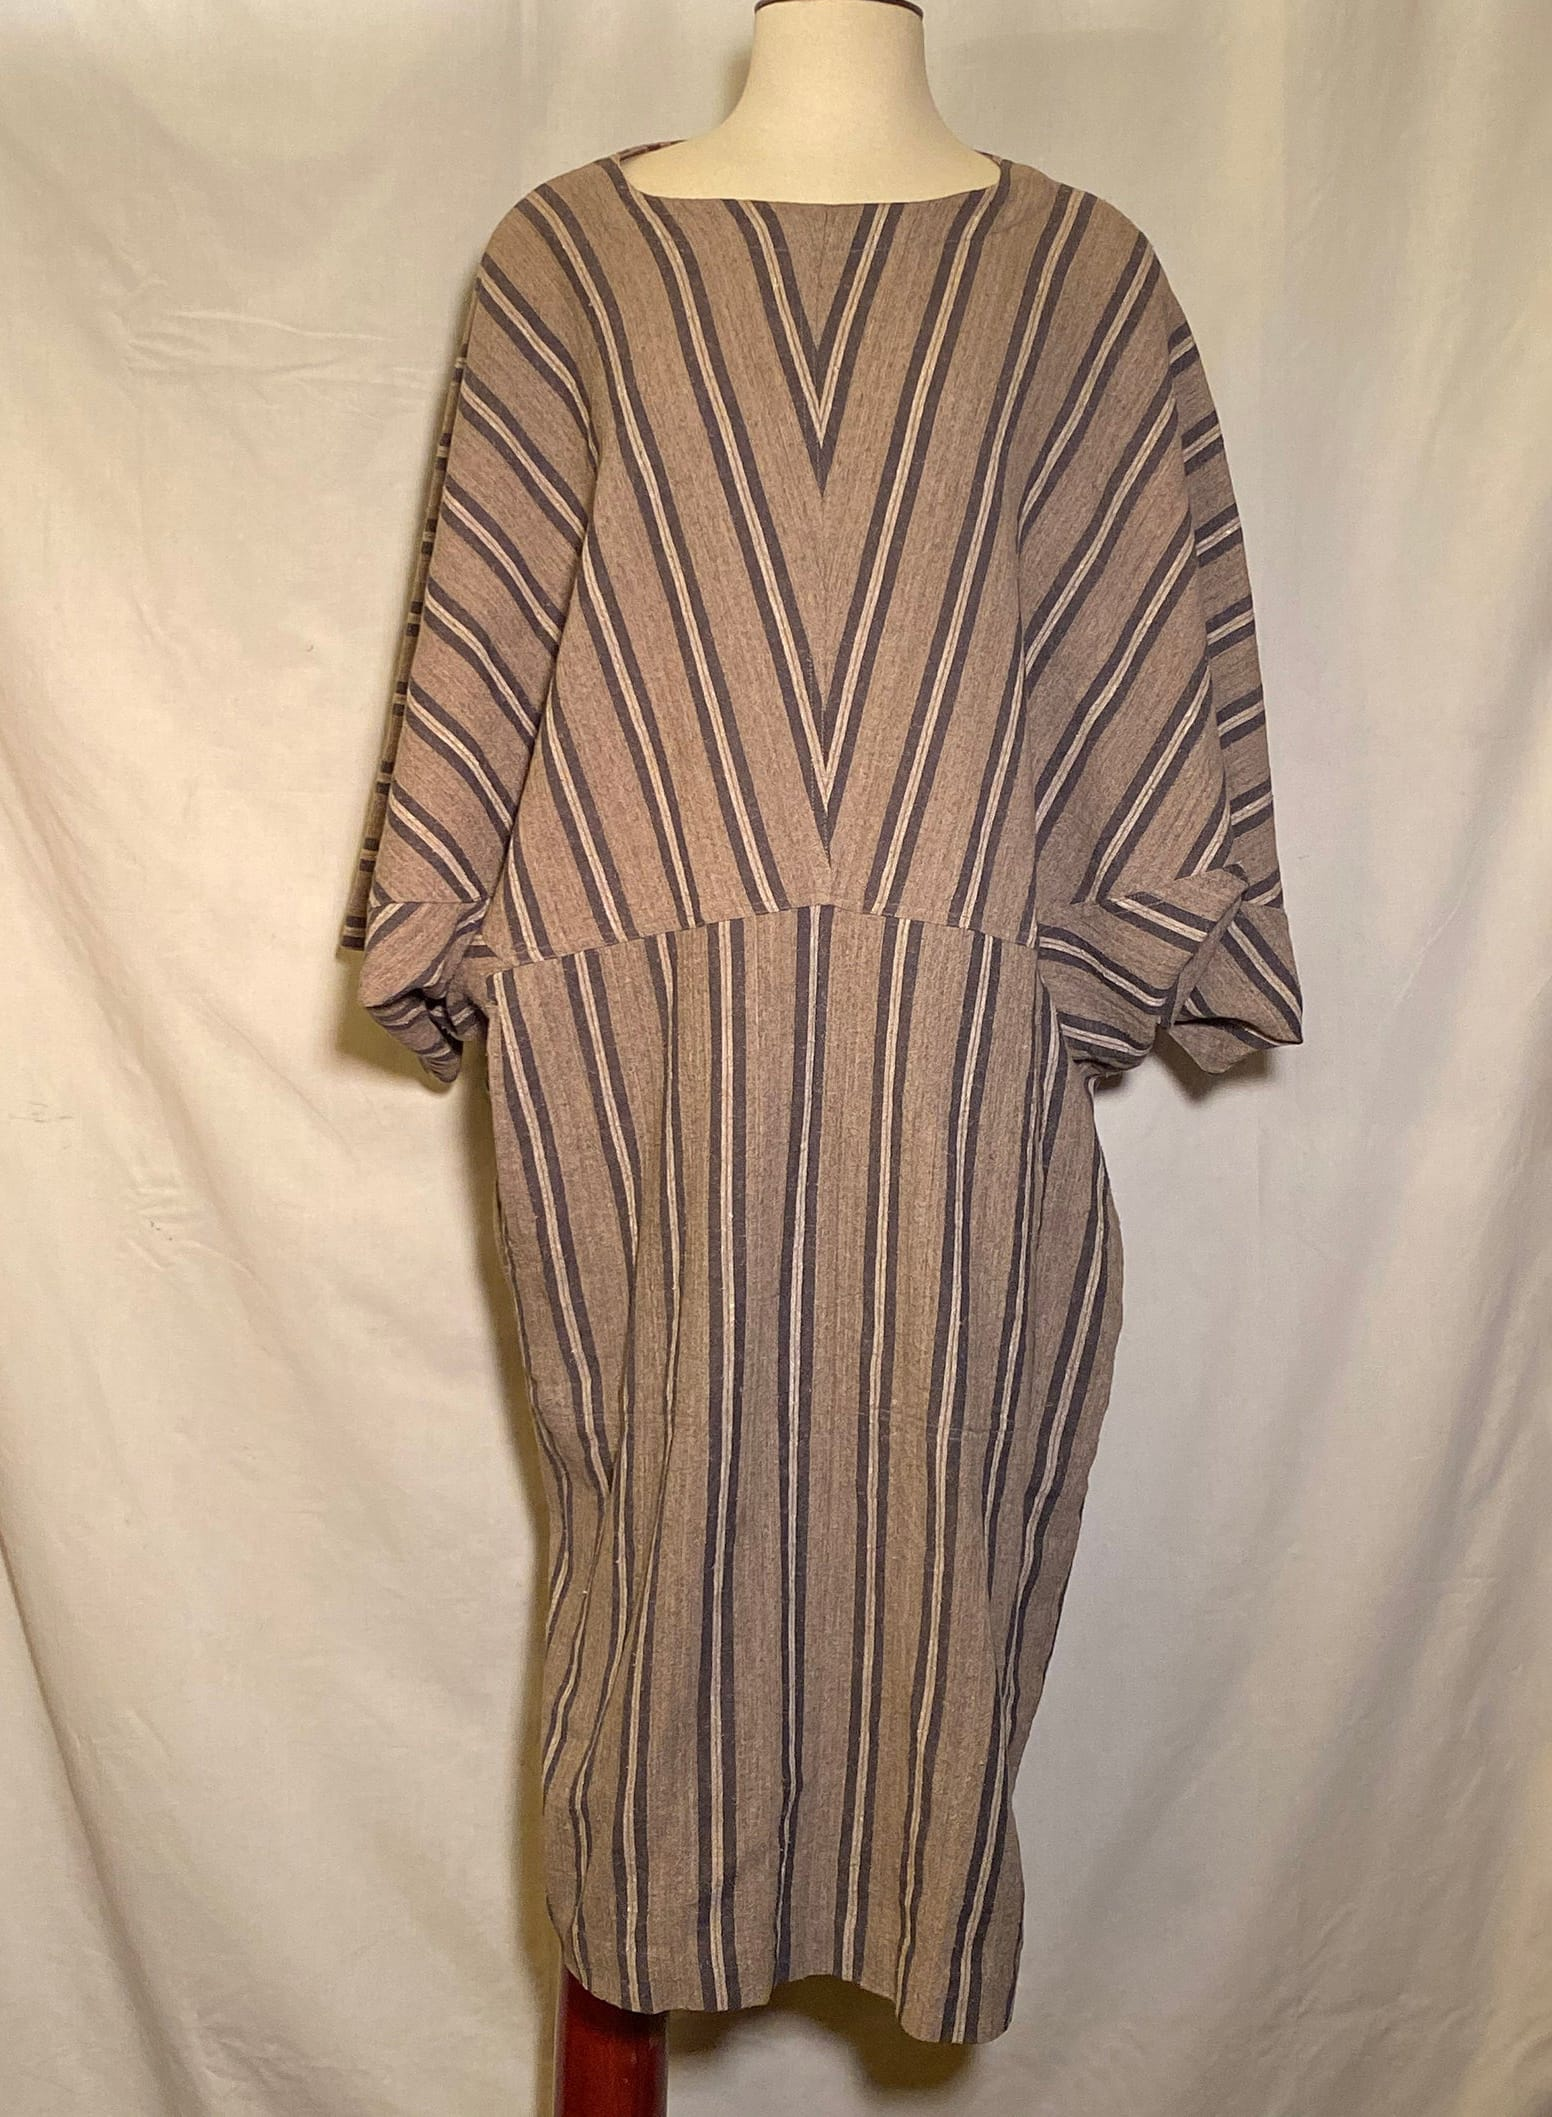 Issey Miyake Plantation Rare 1980s Collectable Taupe Oversize Dress Fits S:M:L